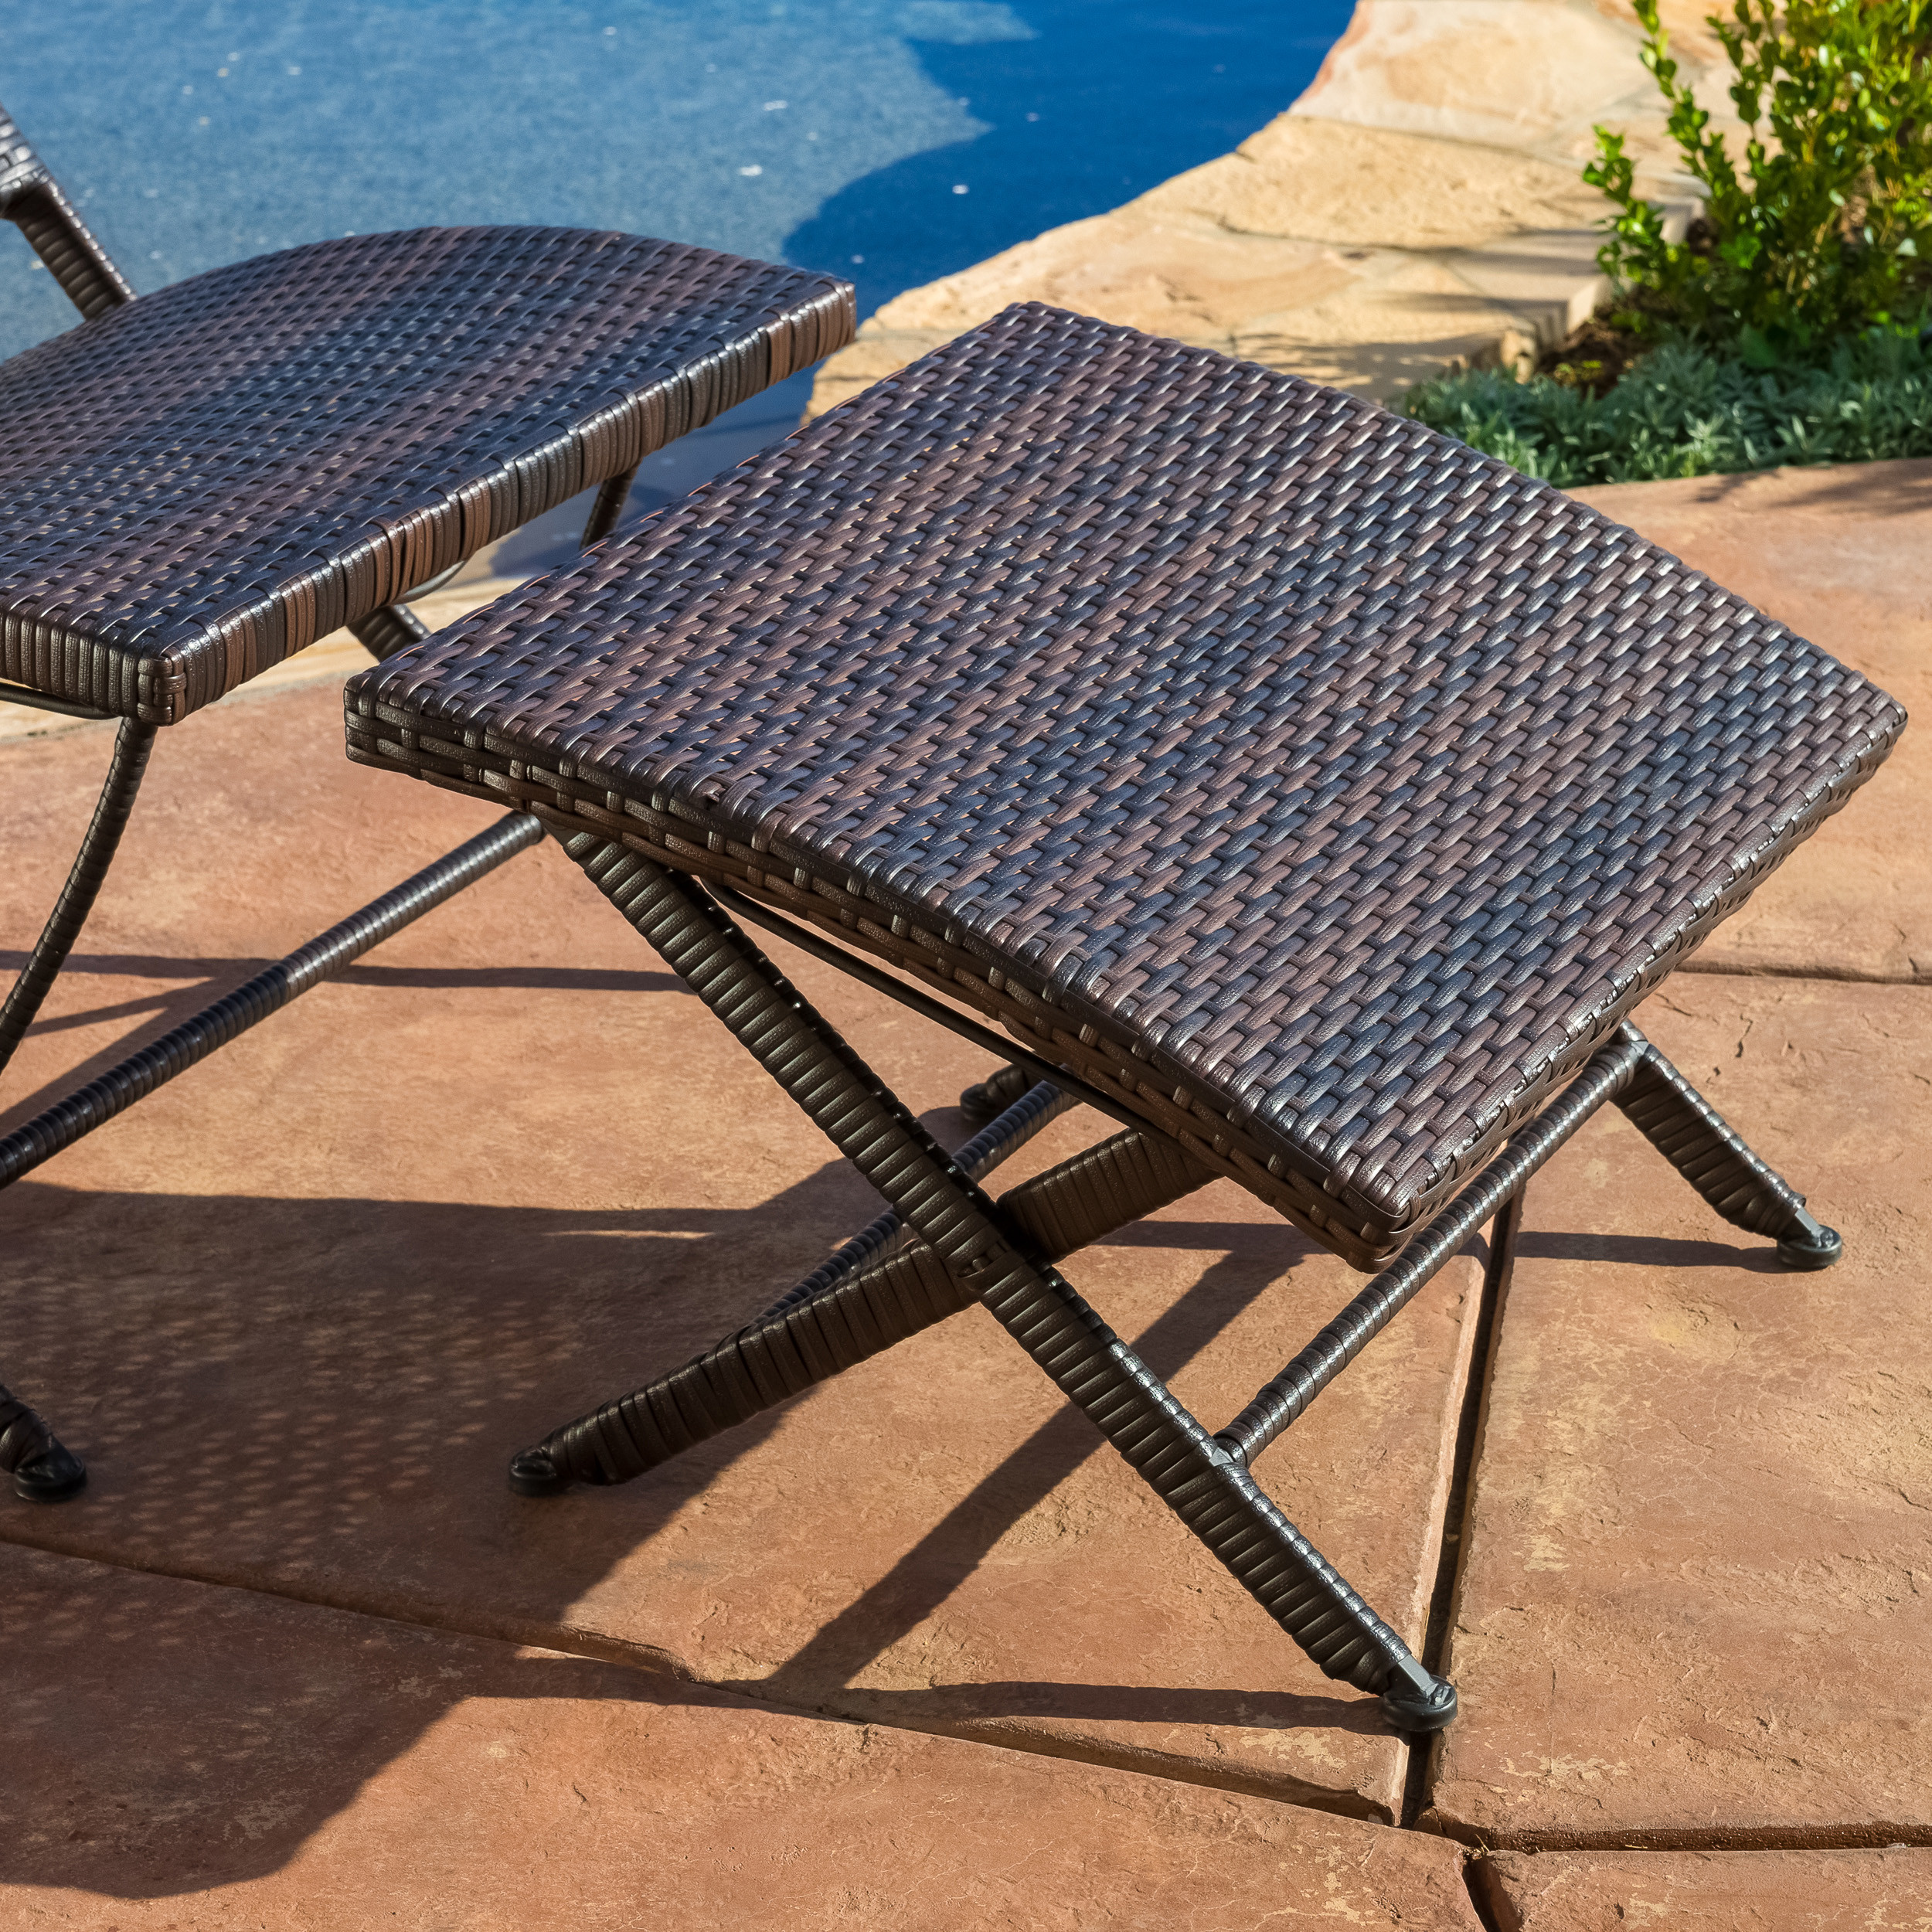 Attractive Orbital Lounger for Patio Chair Inspirations: Lifestyle Solutions Euro Lounger | Newborn Lounger | Orbital Lounger